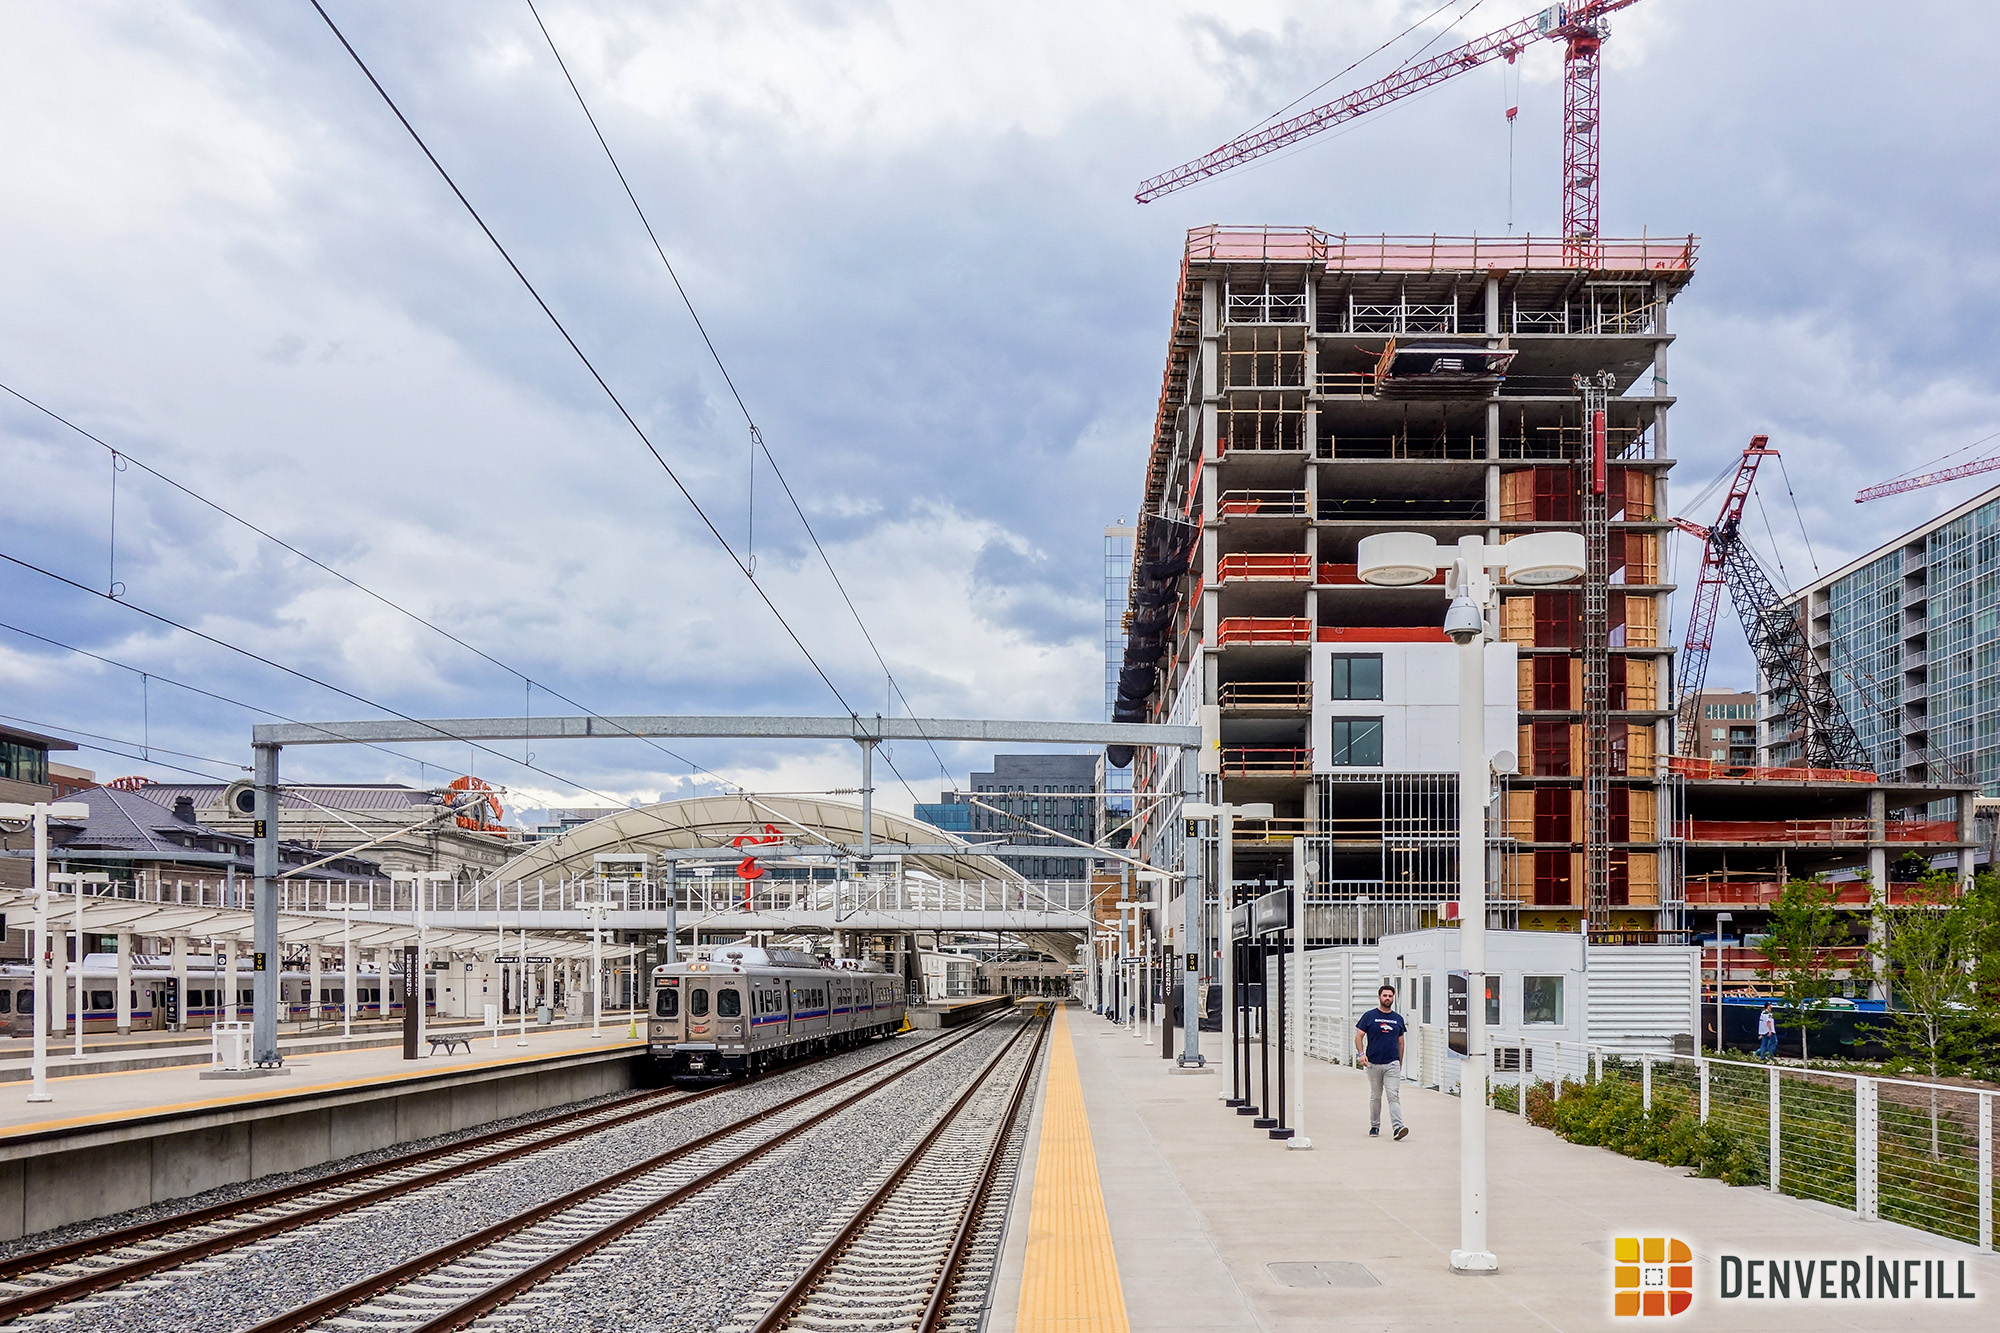 The Coloradan from the commuter rail canopy